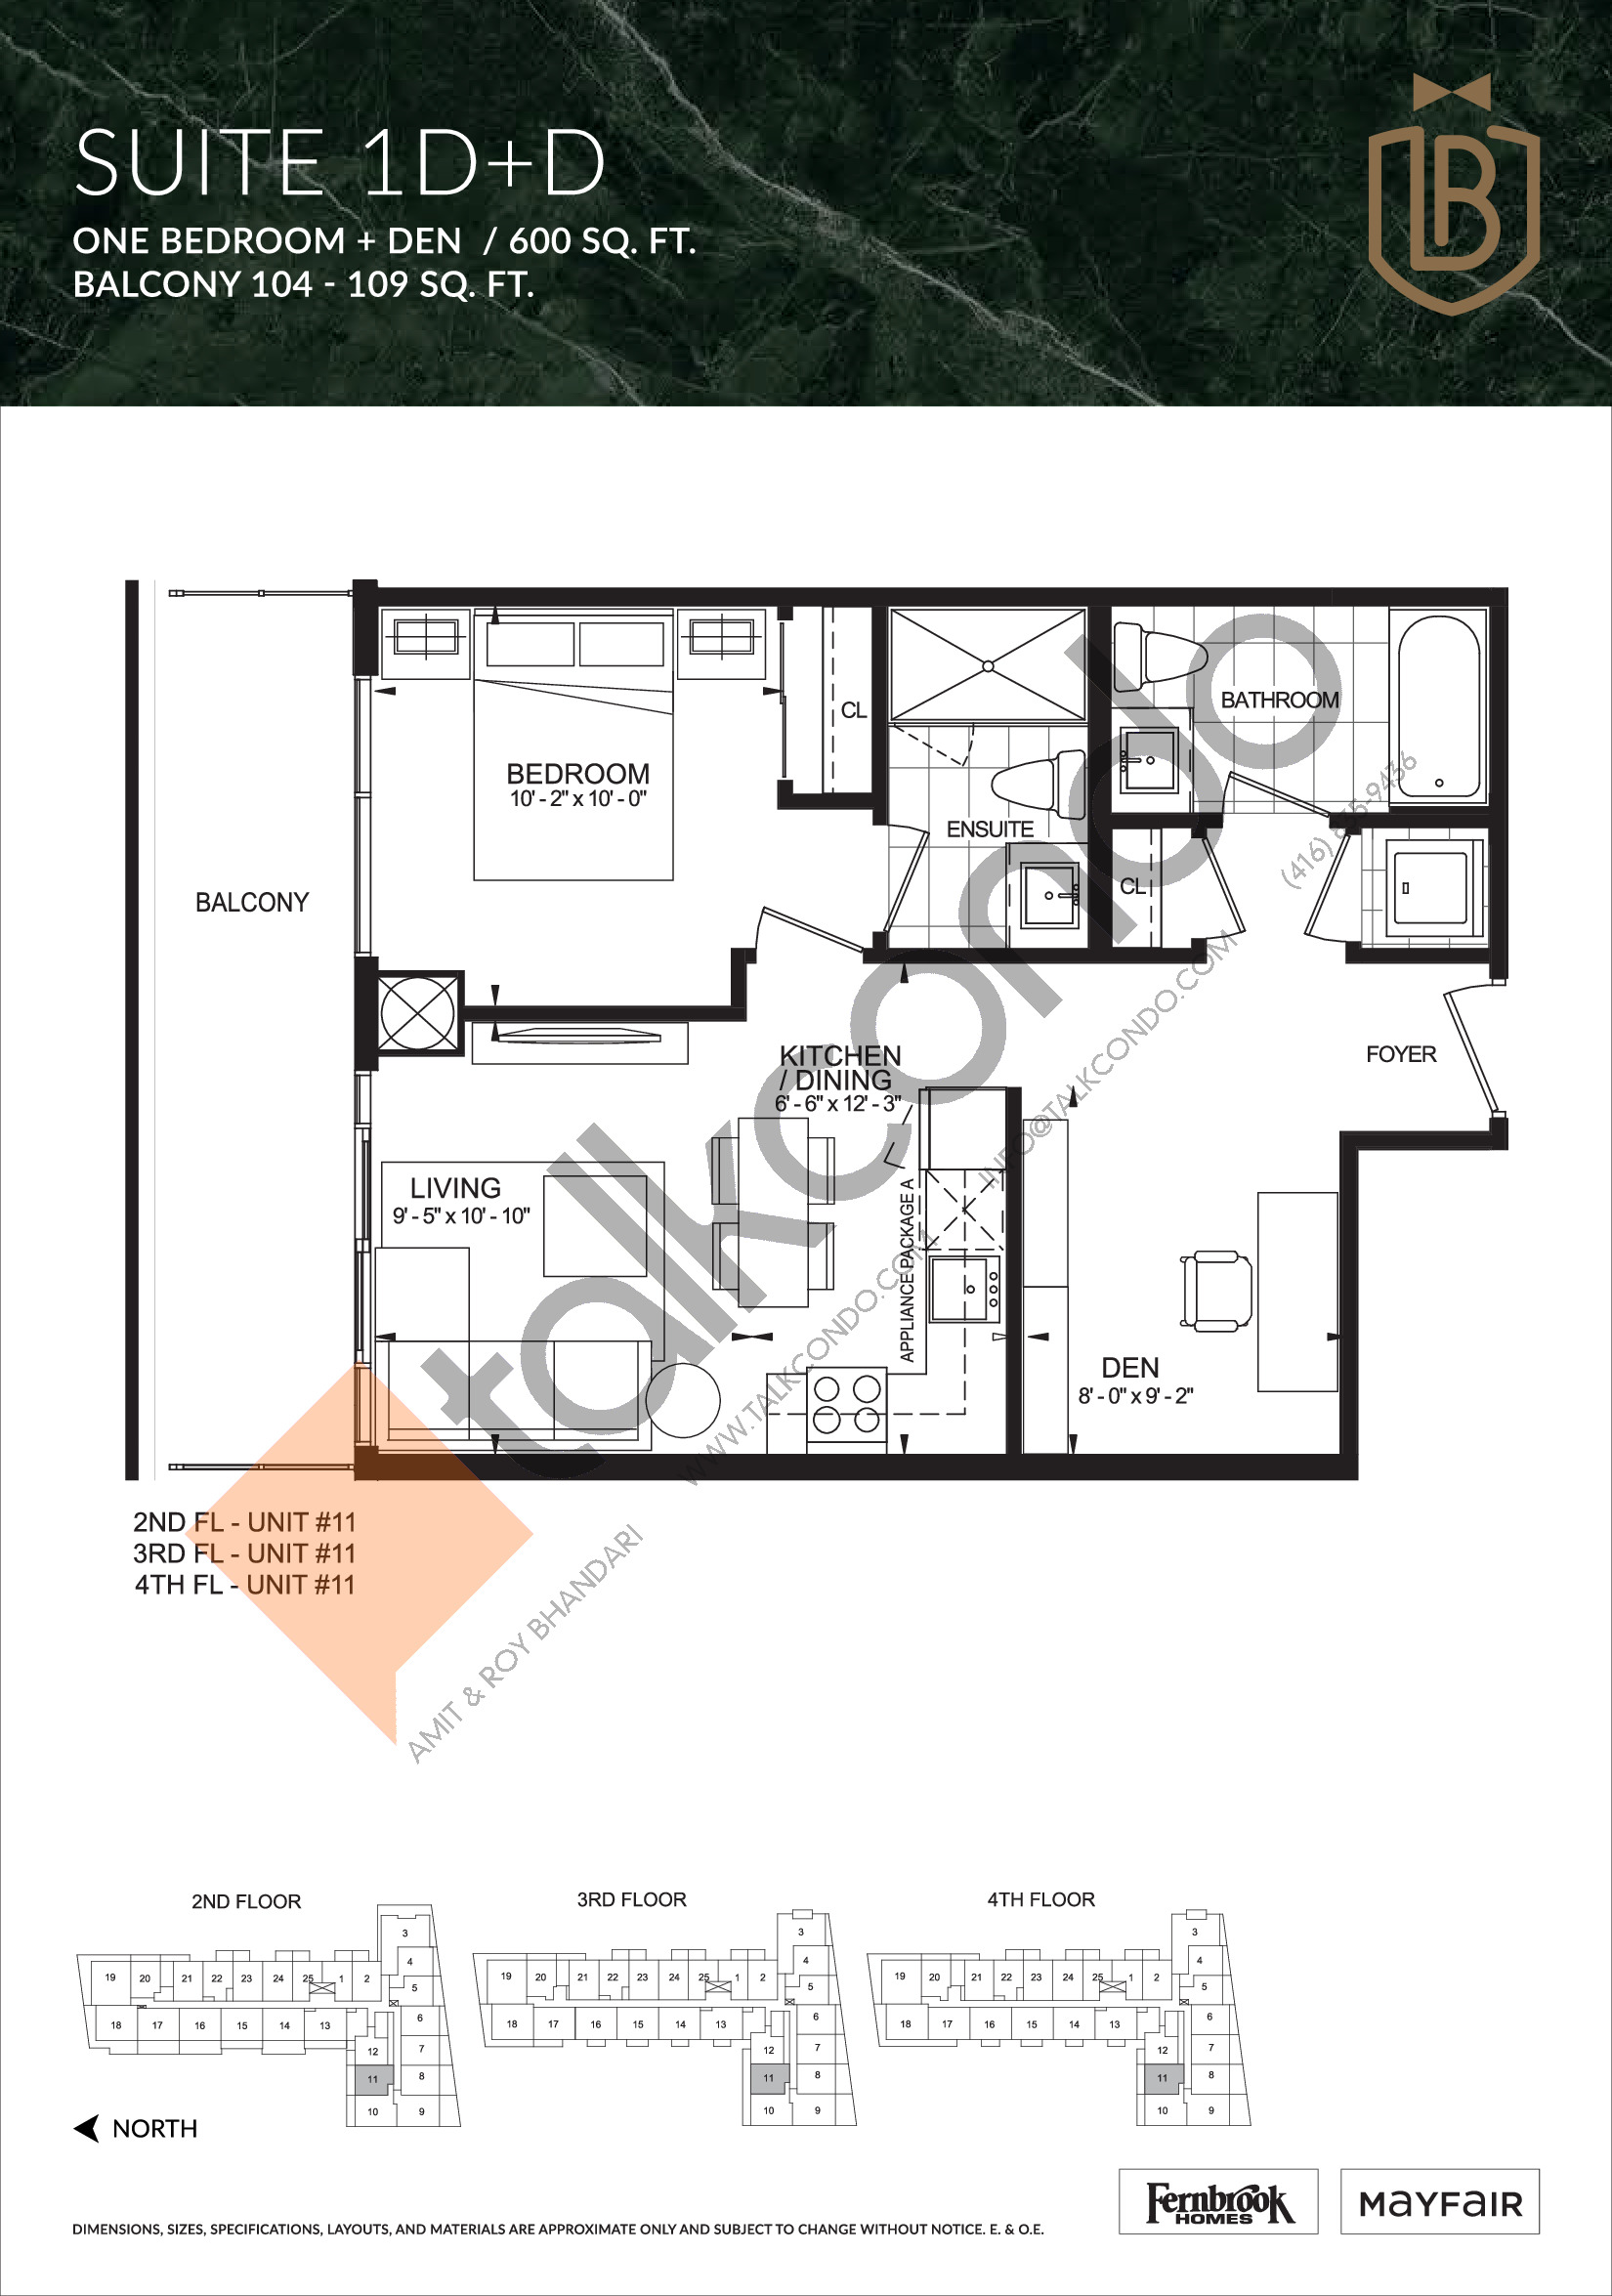 Suite 1D+D Floor Plan at The Butler Condos - 600 sq.ft